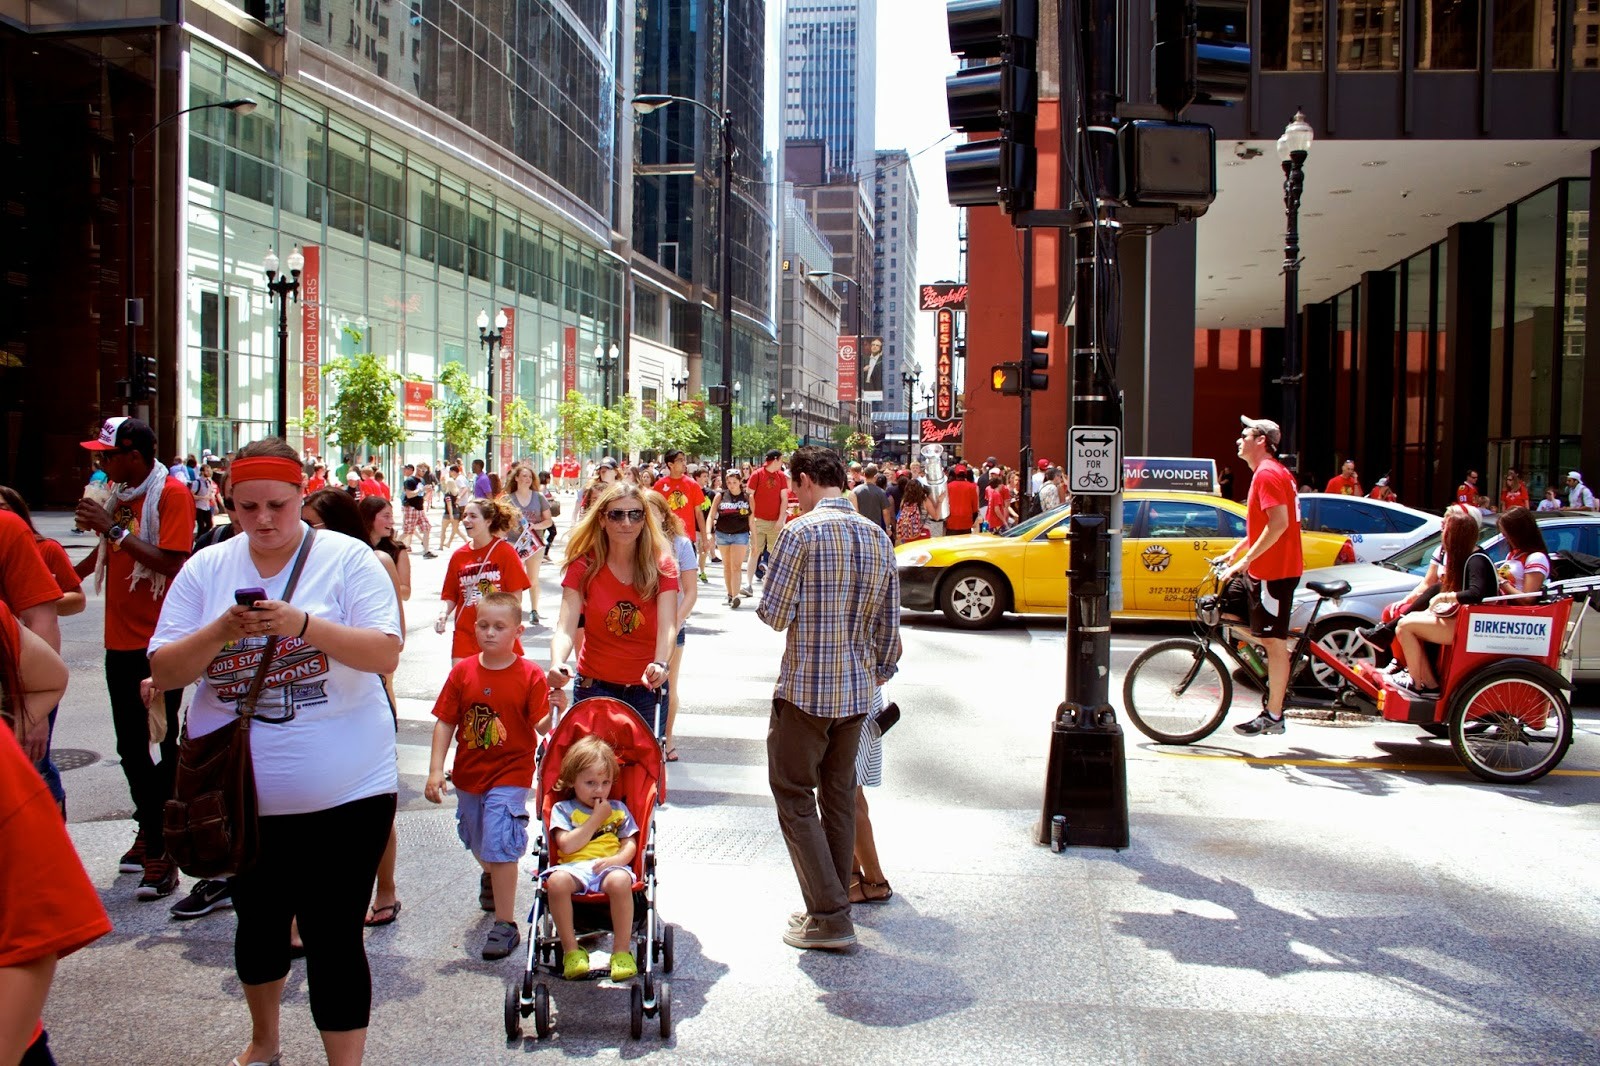 Stanley Cup Champions 2013, Chicago Blackhawks Parade by Tammy Sue Allen Photography.